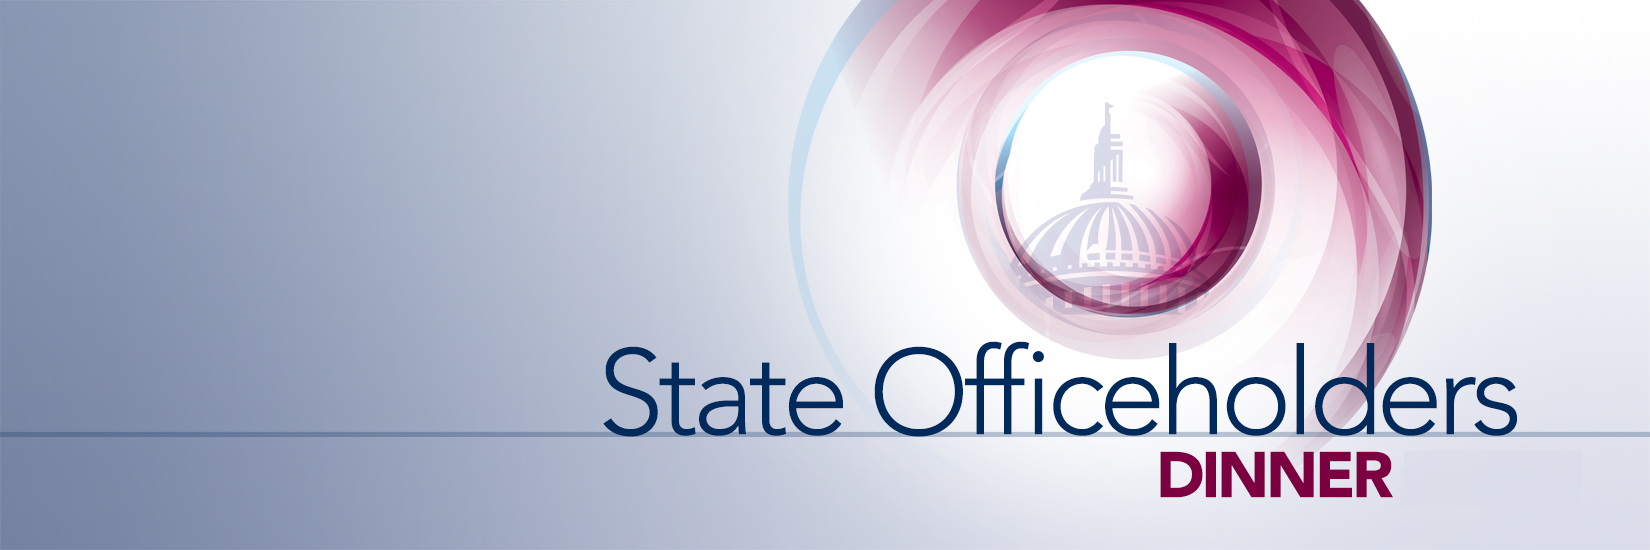 State-Officeholders(1).png